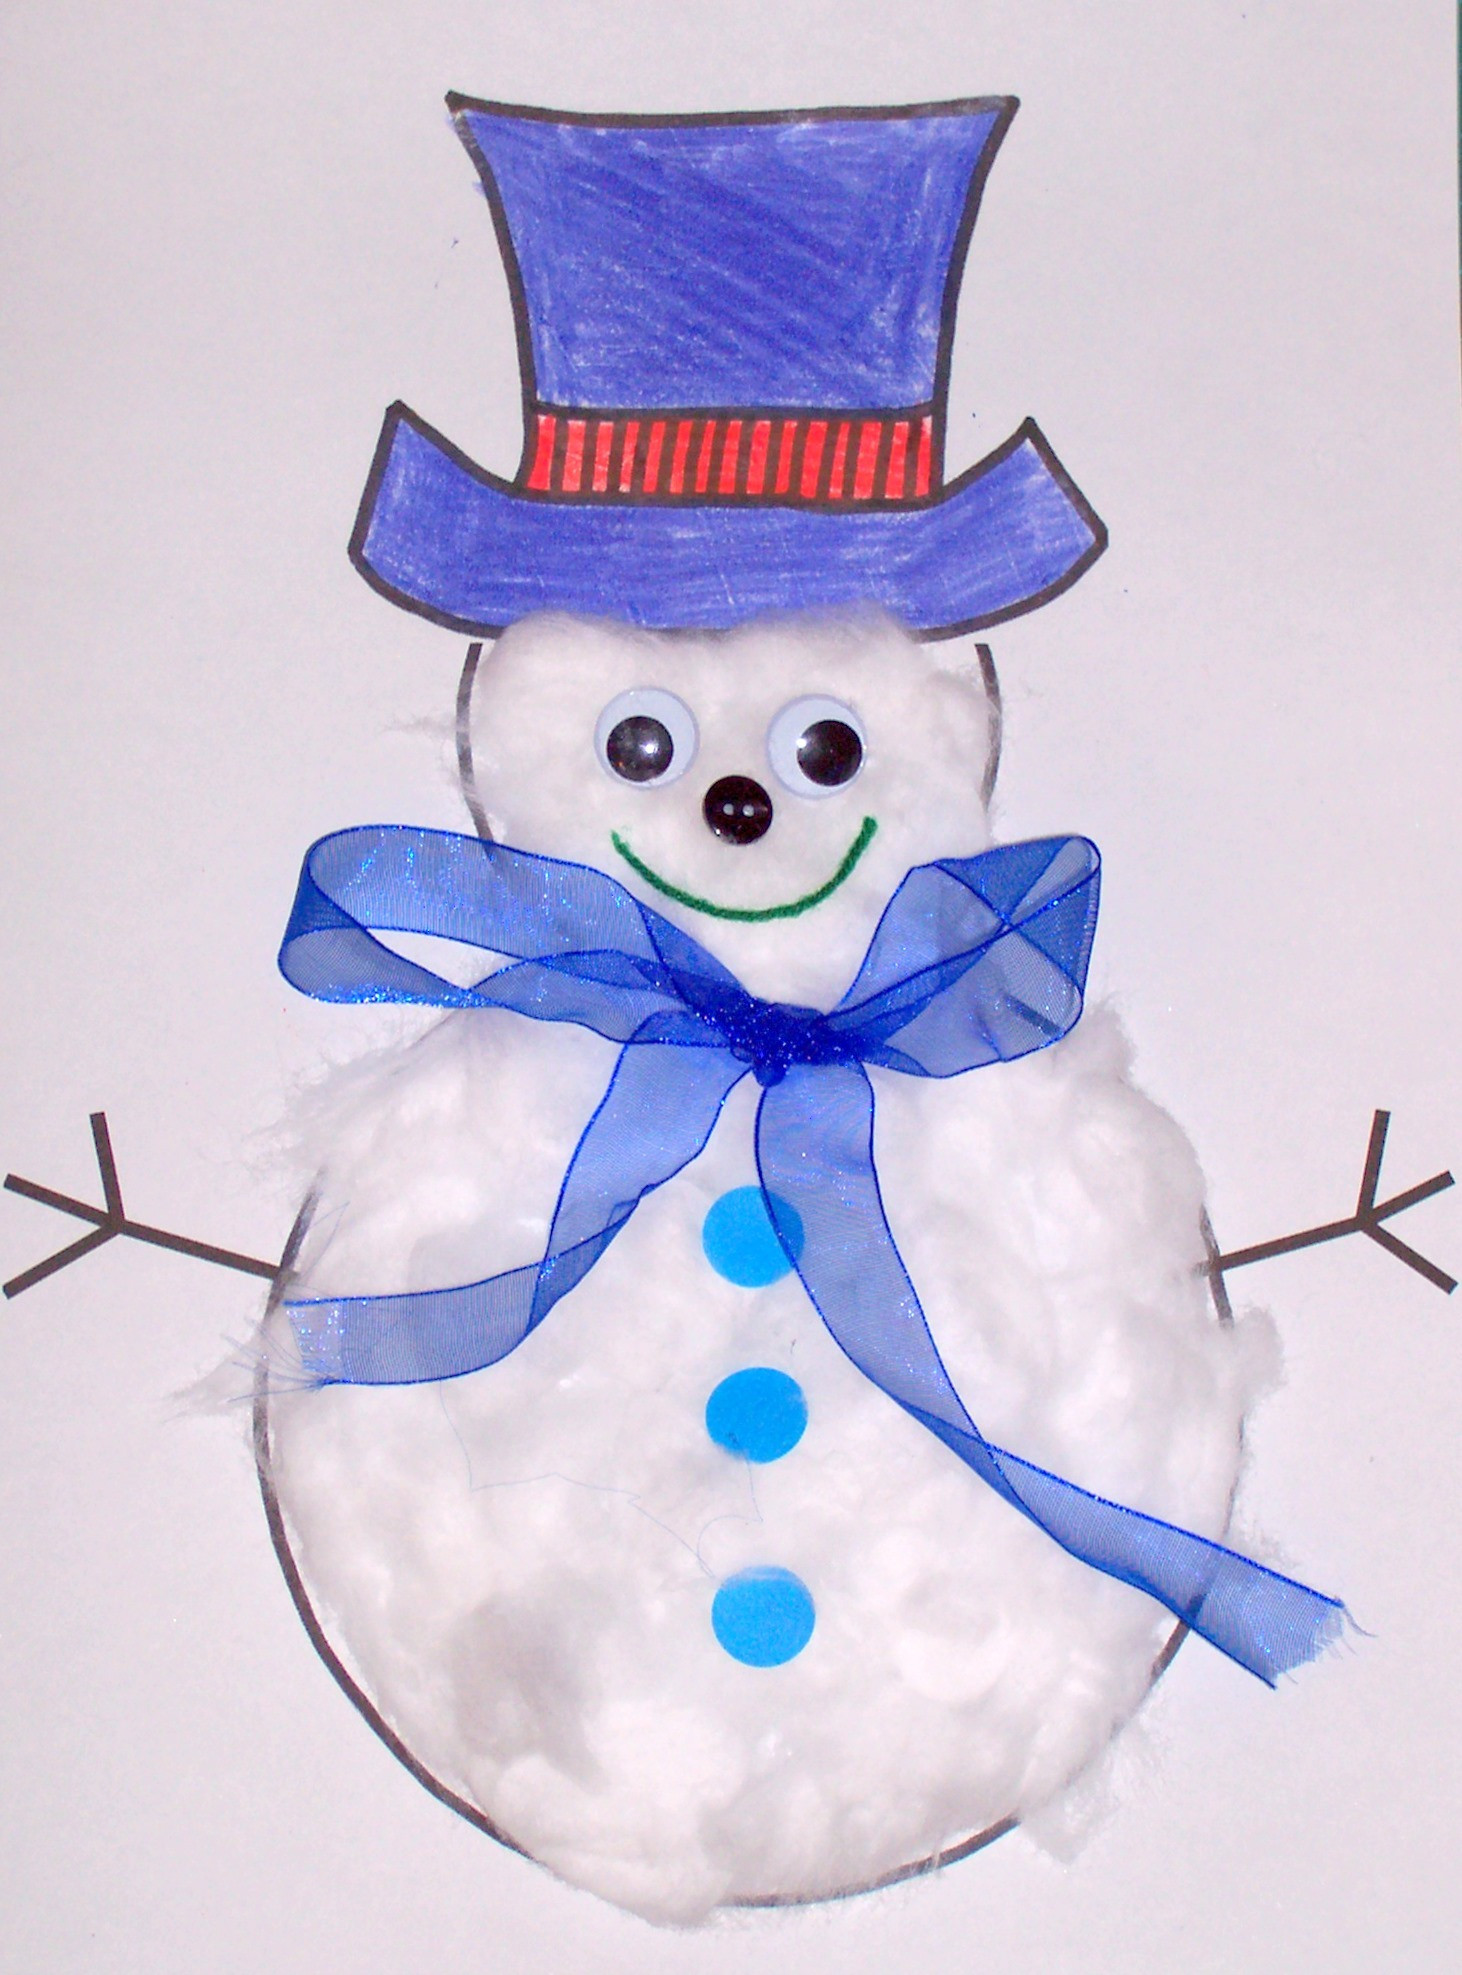 Best ideas about Christmas Craft Ideas For Kids . Save or Pin 15 Fun and Easy Christmas Craft Ideas for Kids – Miss Lassy Now.